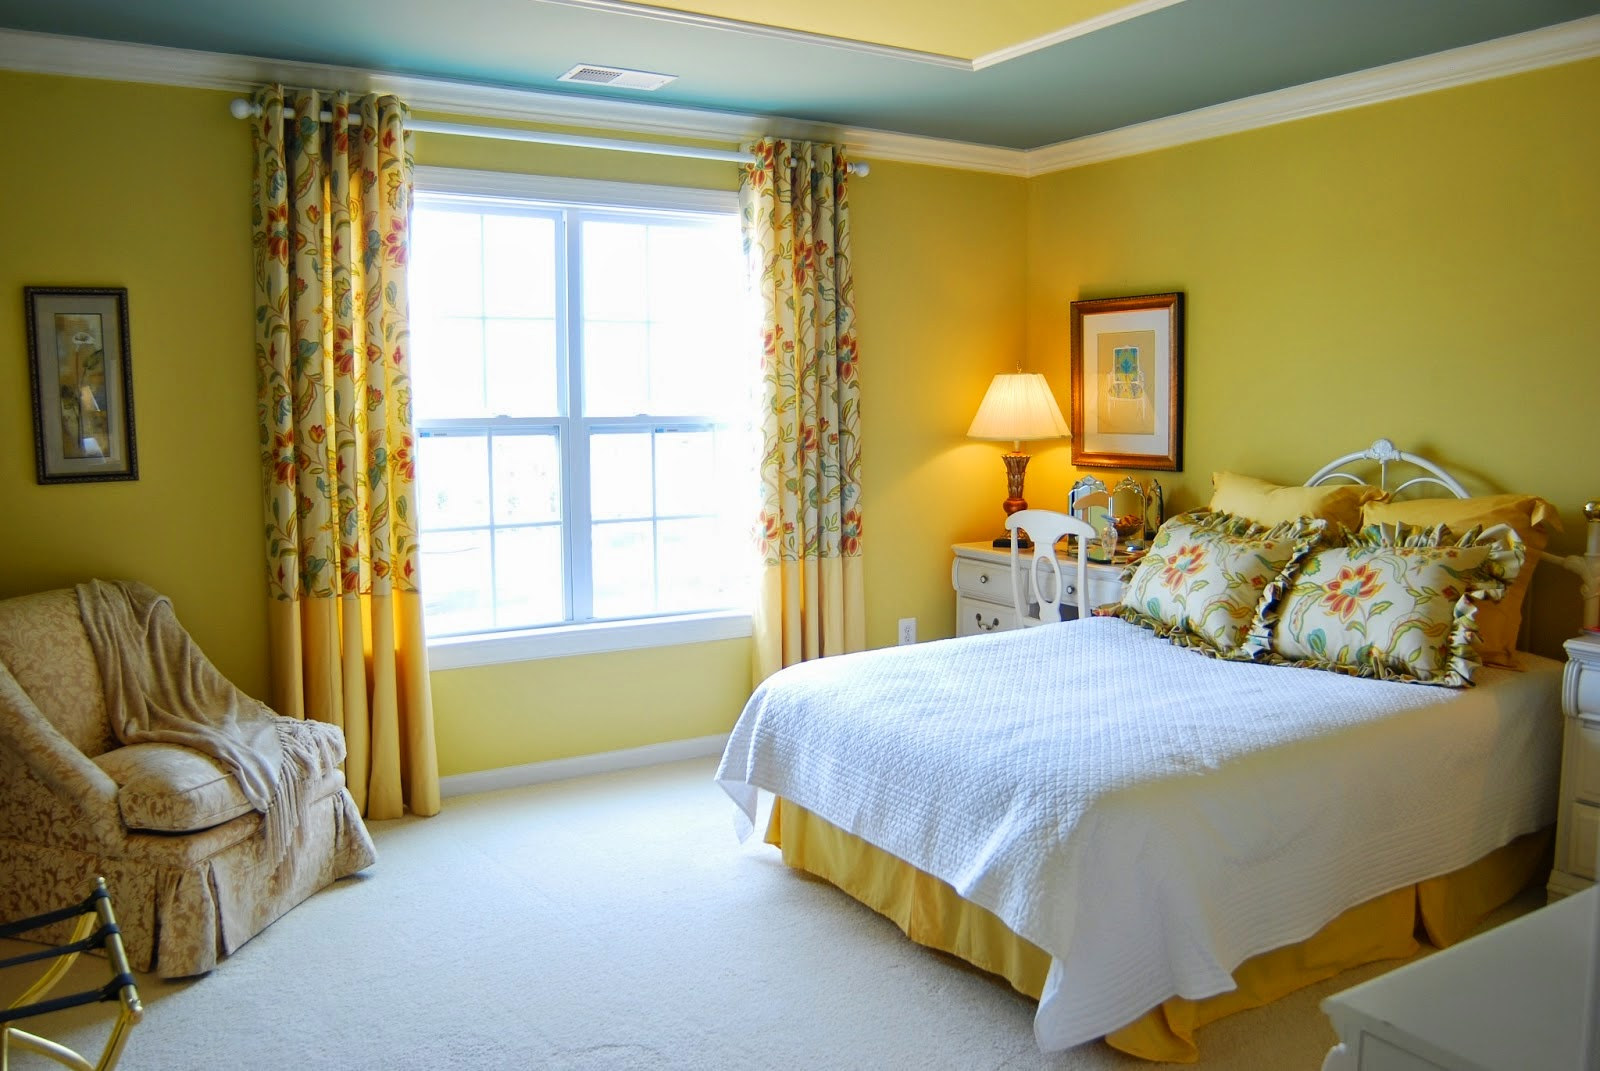 Bedroom paint color ideas with accent wall - Fabulous Decor Ideas 5 Beautiful And Awesome Paint Color 5 Beautiful And Awesome Paint Color Decorating